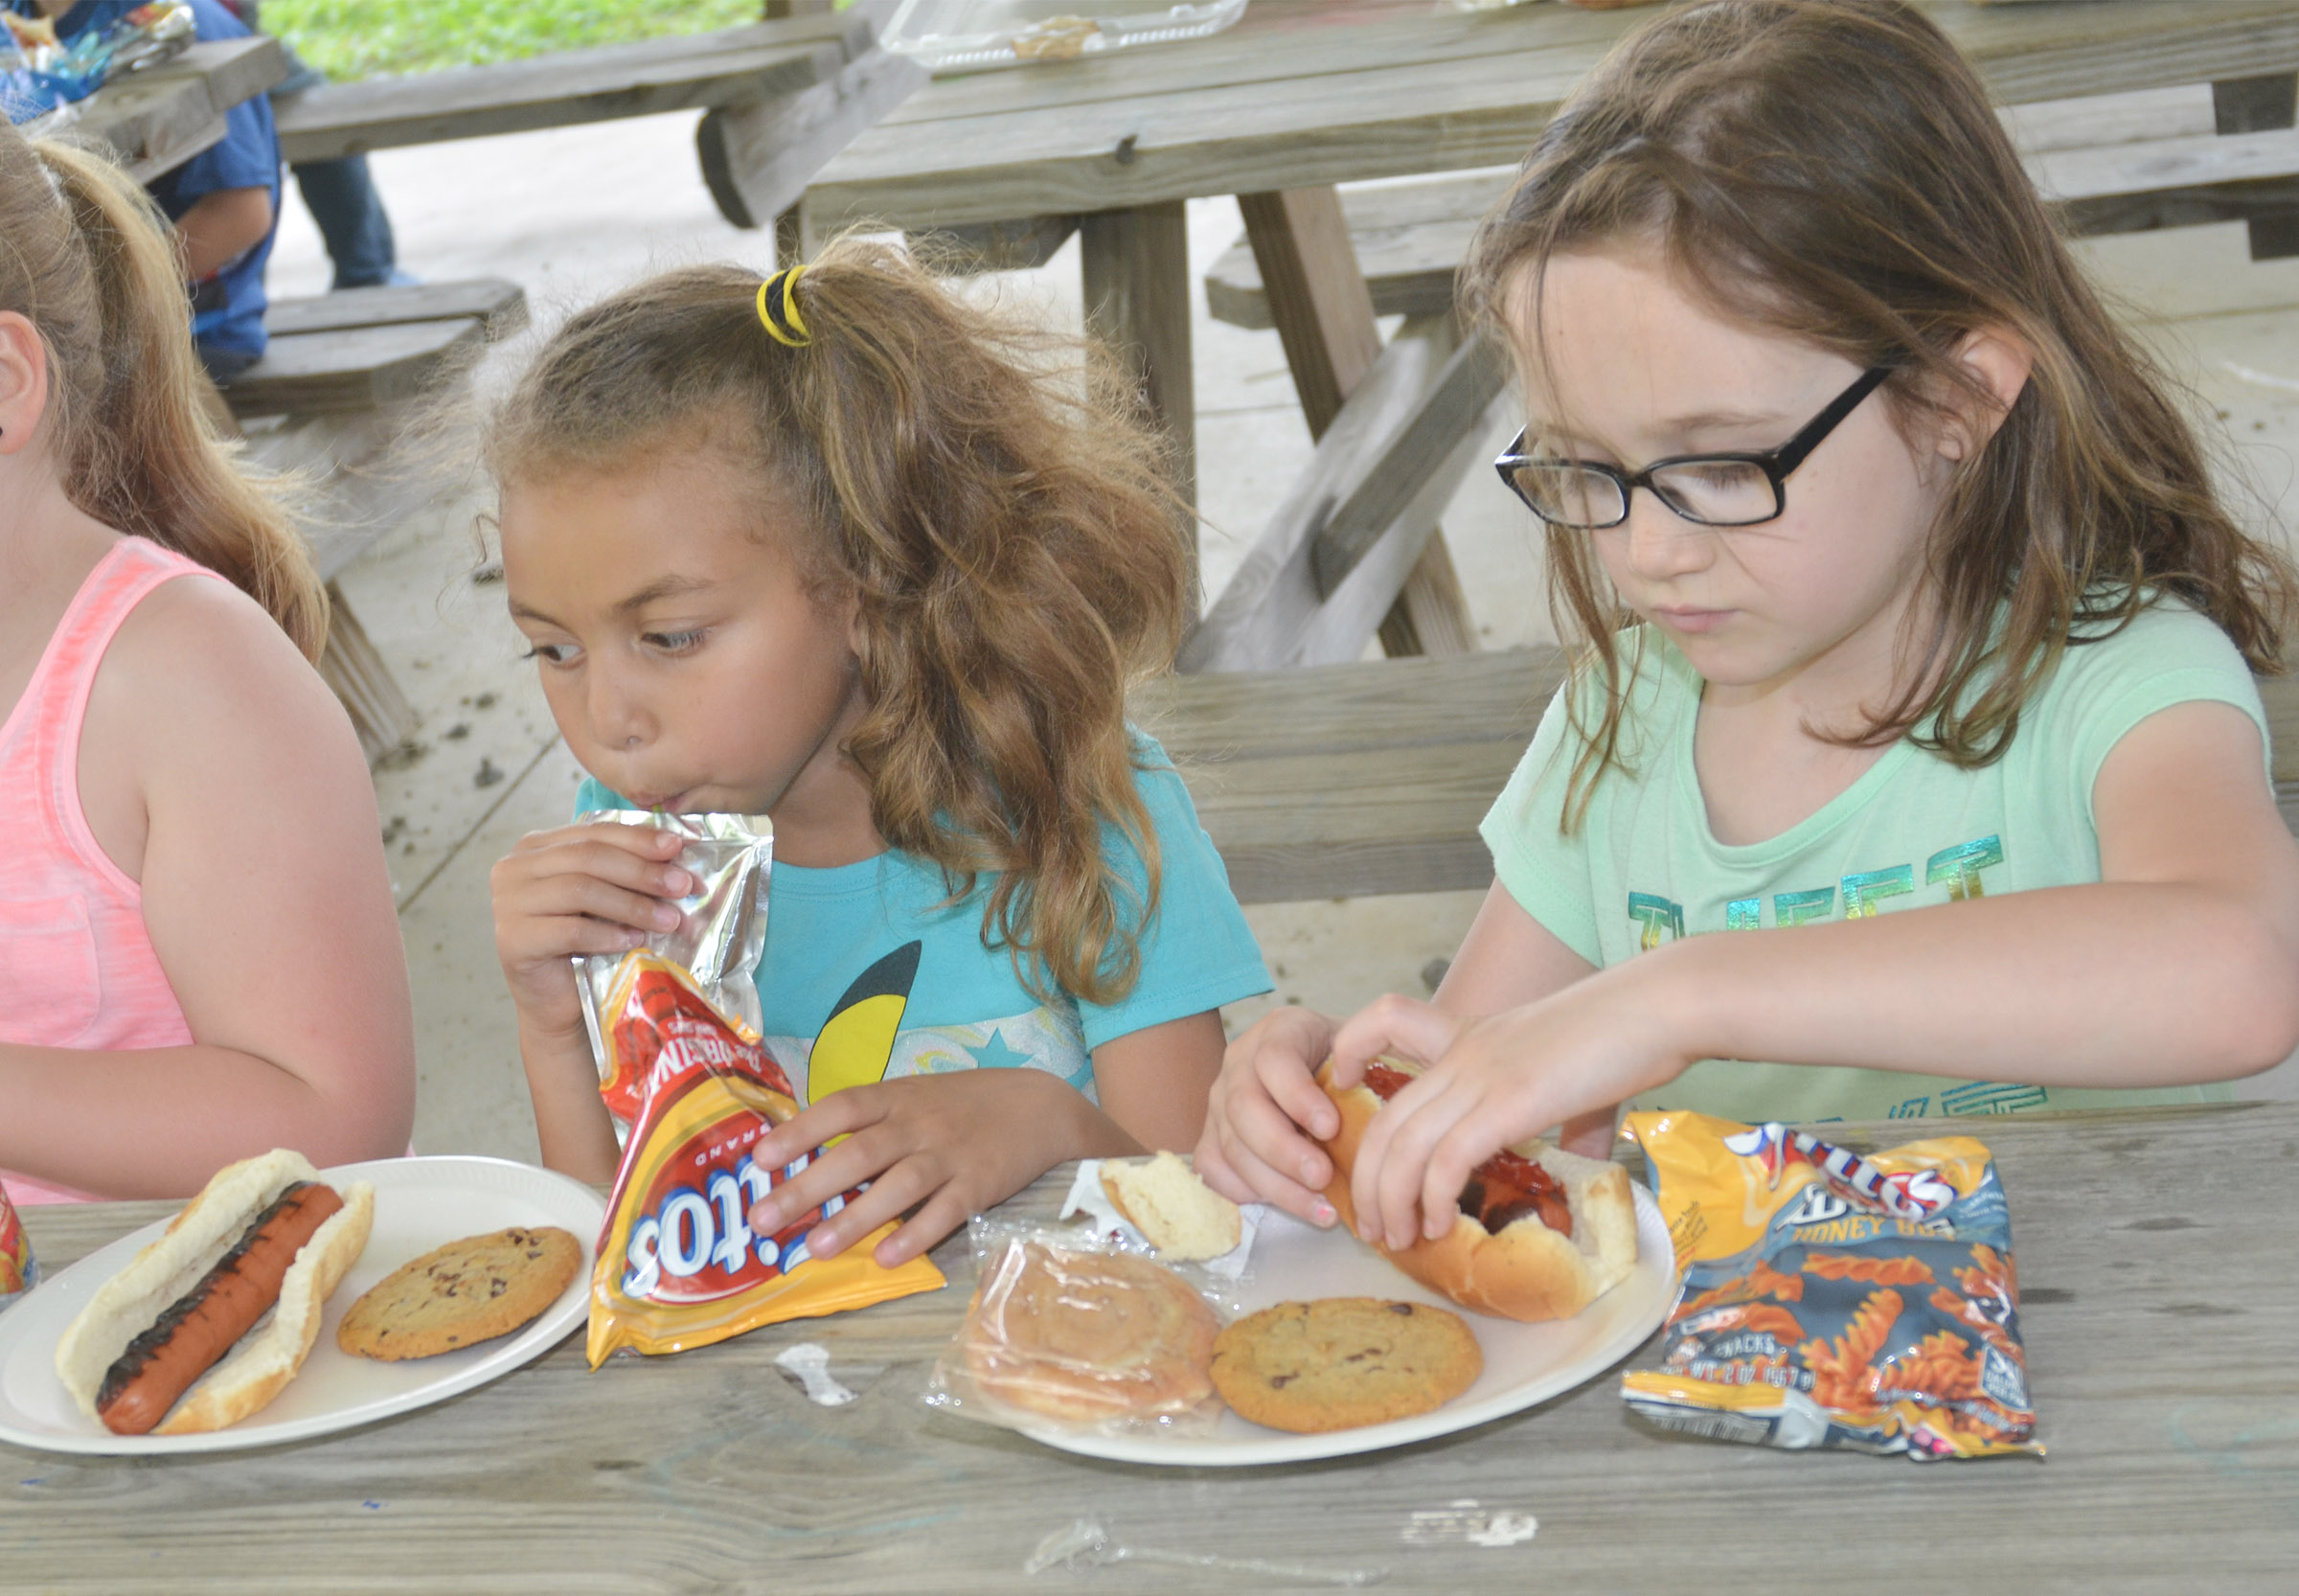 CES first-graders Londyn Smith, at left, and Frehley Whitlow enjoy their cookout.